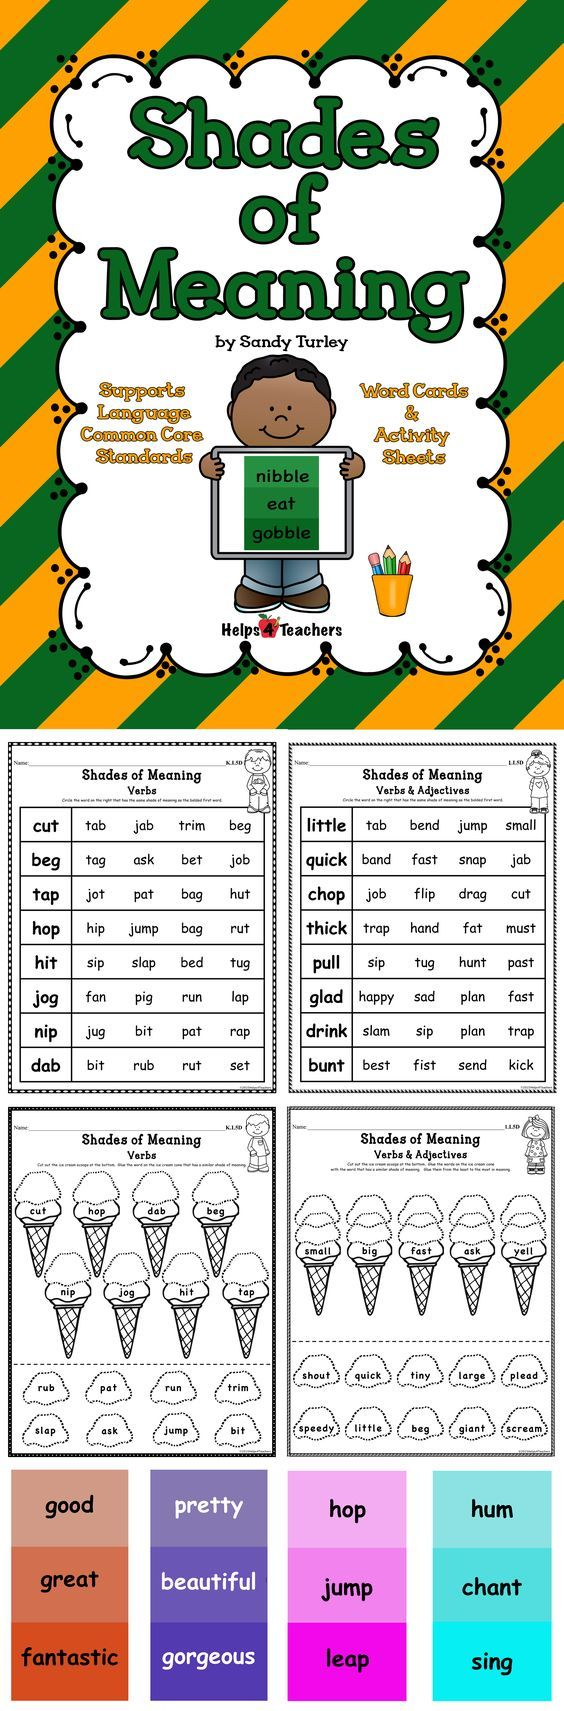 $ AWESOME!  This packet includes: - 14 Verb Shades of Meaning Cards - 14 Adjective Shades of Meaning Cards - Two Shades of Meaning Verb Activities - Two Shades of Meaning Verb & Adjective Activities.  This packet covers the following Common Core LANGUAGE standards:  CCSS.ELA-LITERACY.L.K.5.D  CCSS.ELA-LITERACY.L.1.5.D  CCSS.ELA-LITERACY.L.2.5.B